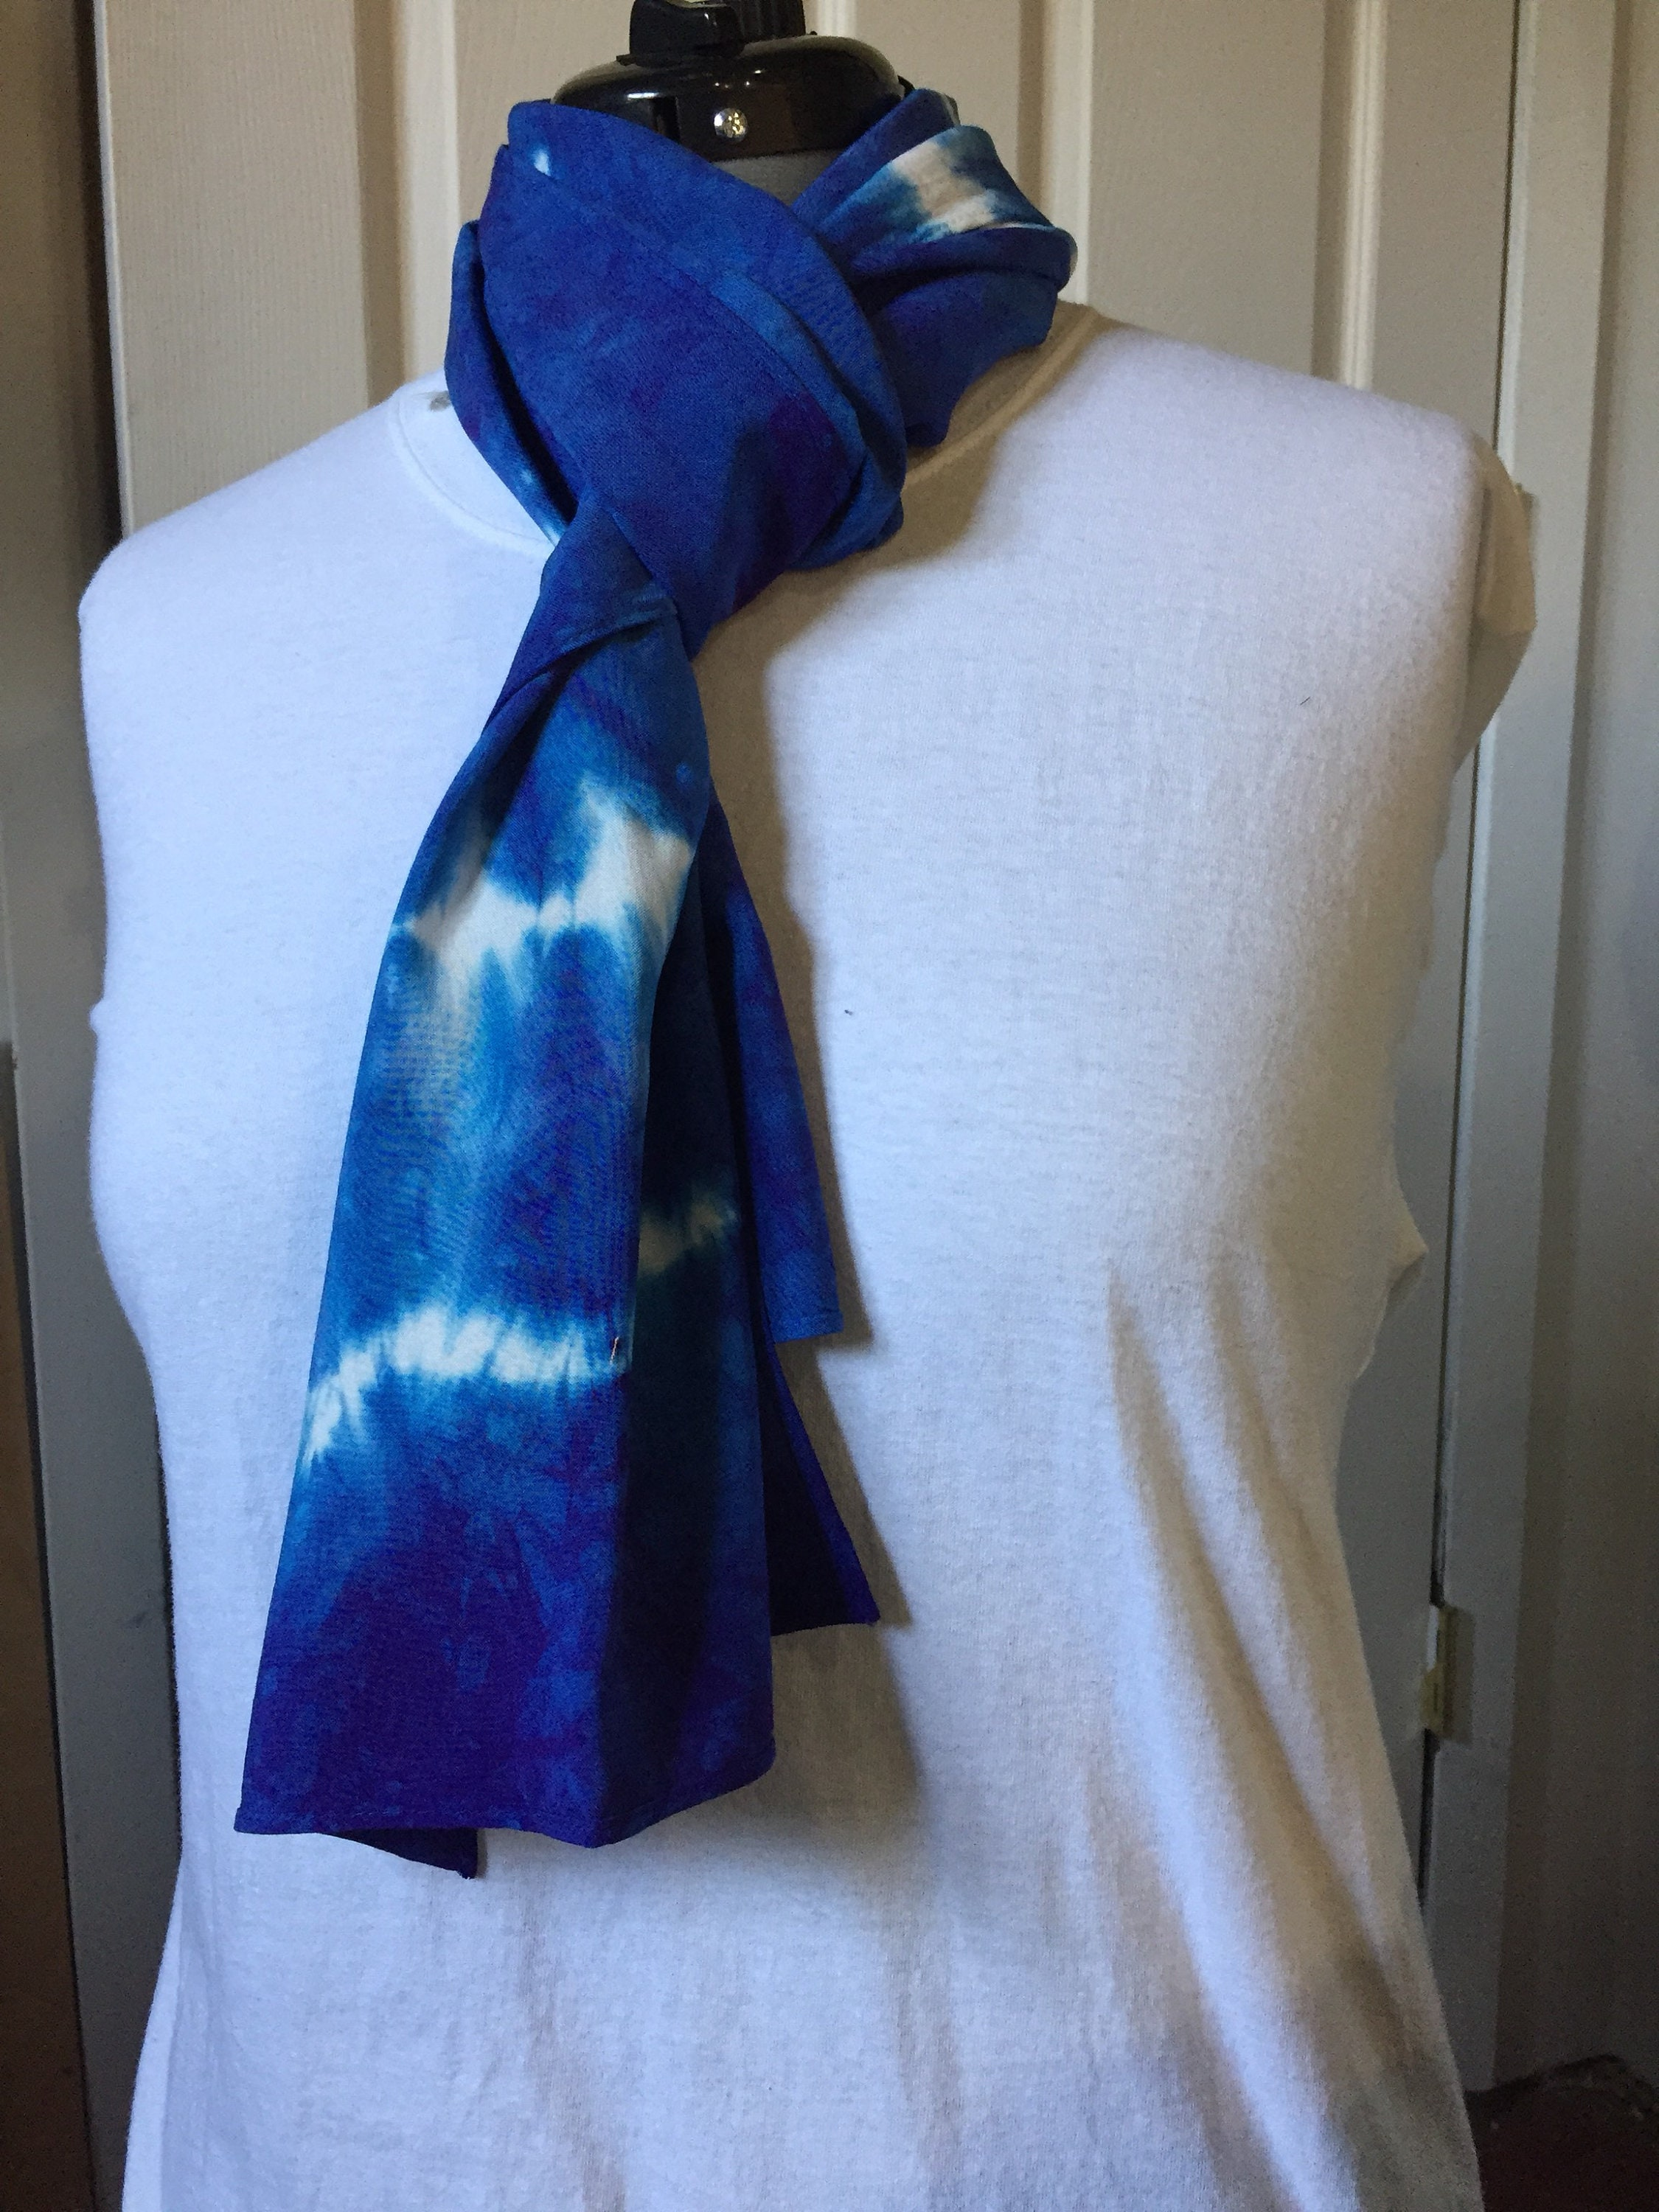 33e013787 Bamboo rayon, (BR7.30), bamboo rayon scarf, Dyed using shibori techniques  in royal blue. 14 x 70